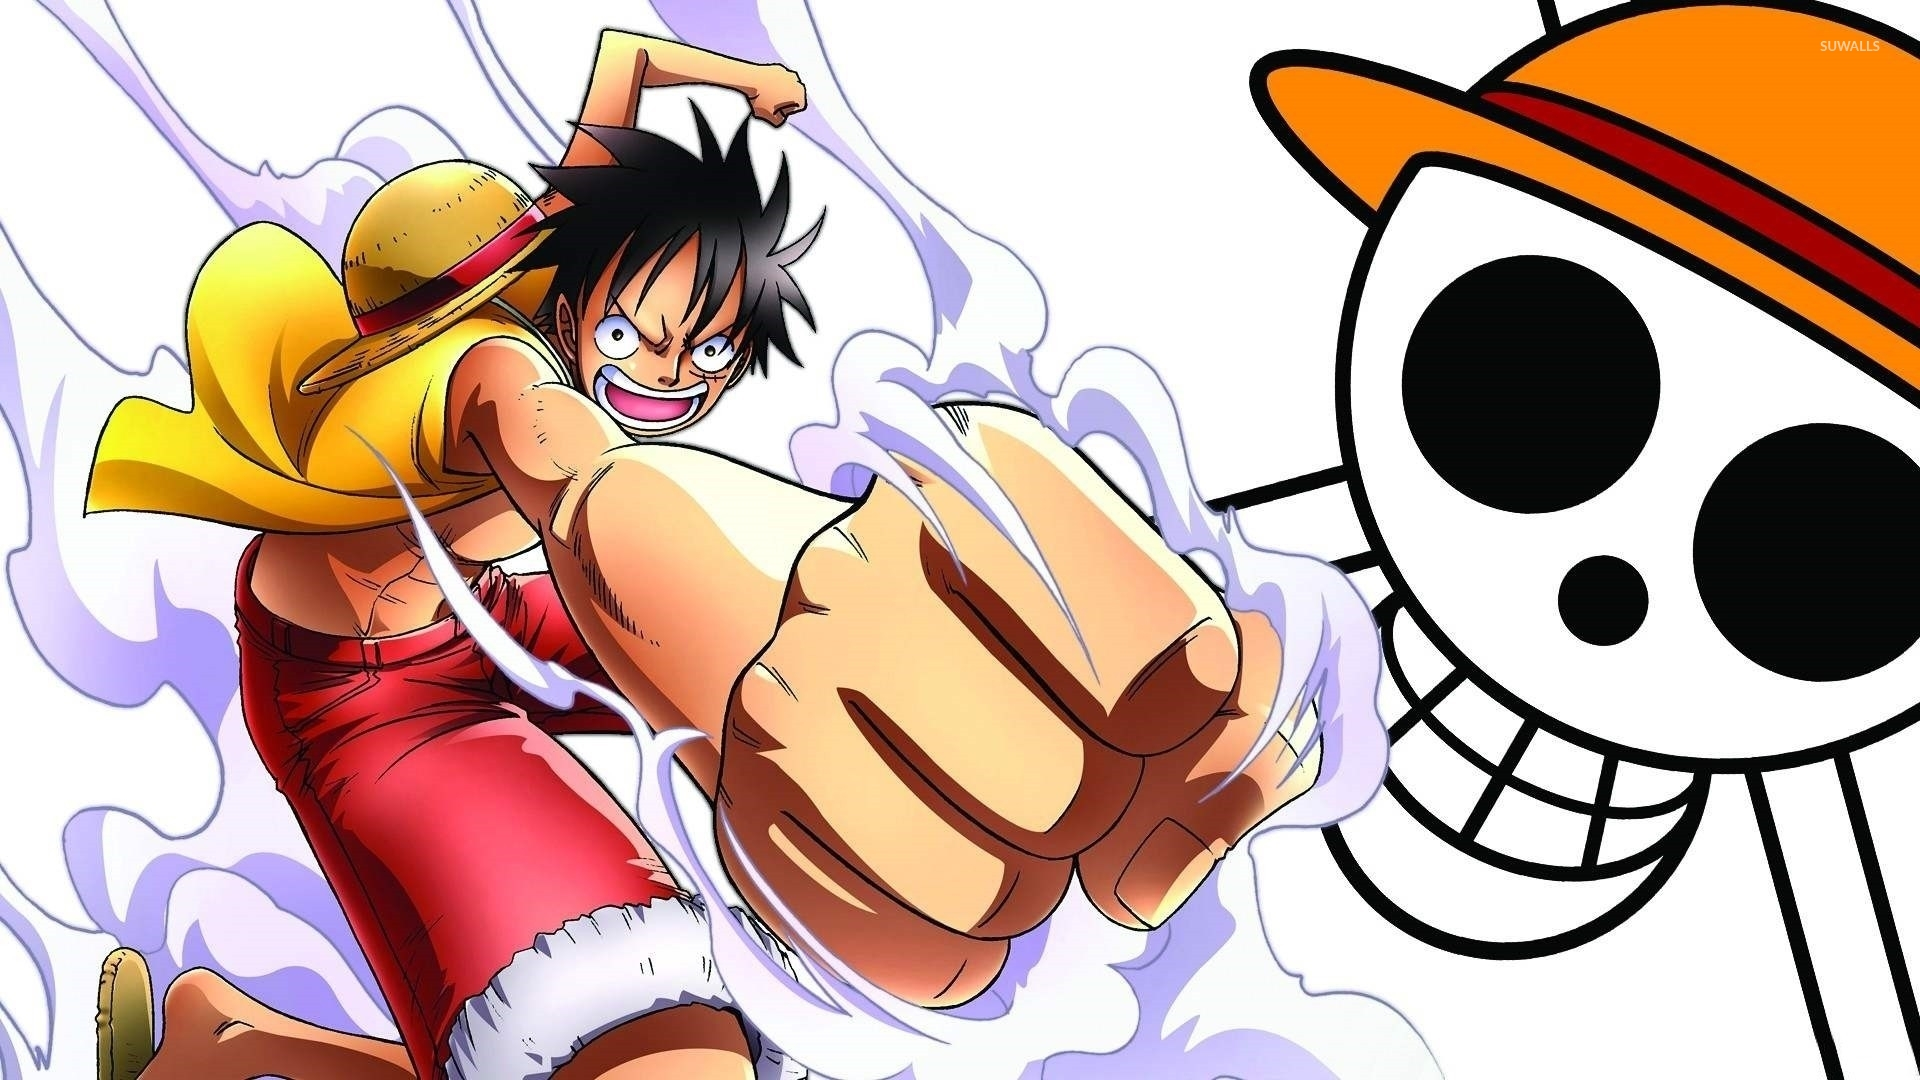 Monkey D Luffy One Piece 6 Wallpaper Anime Wallpapers